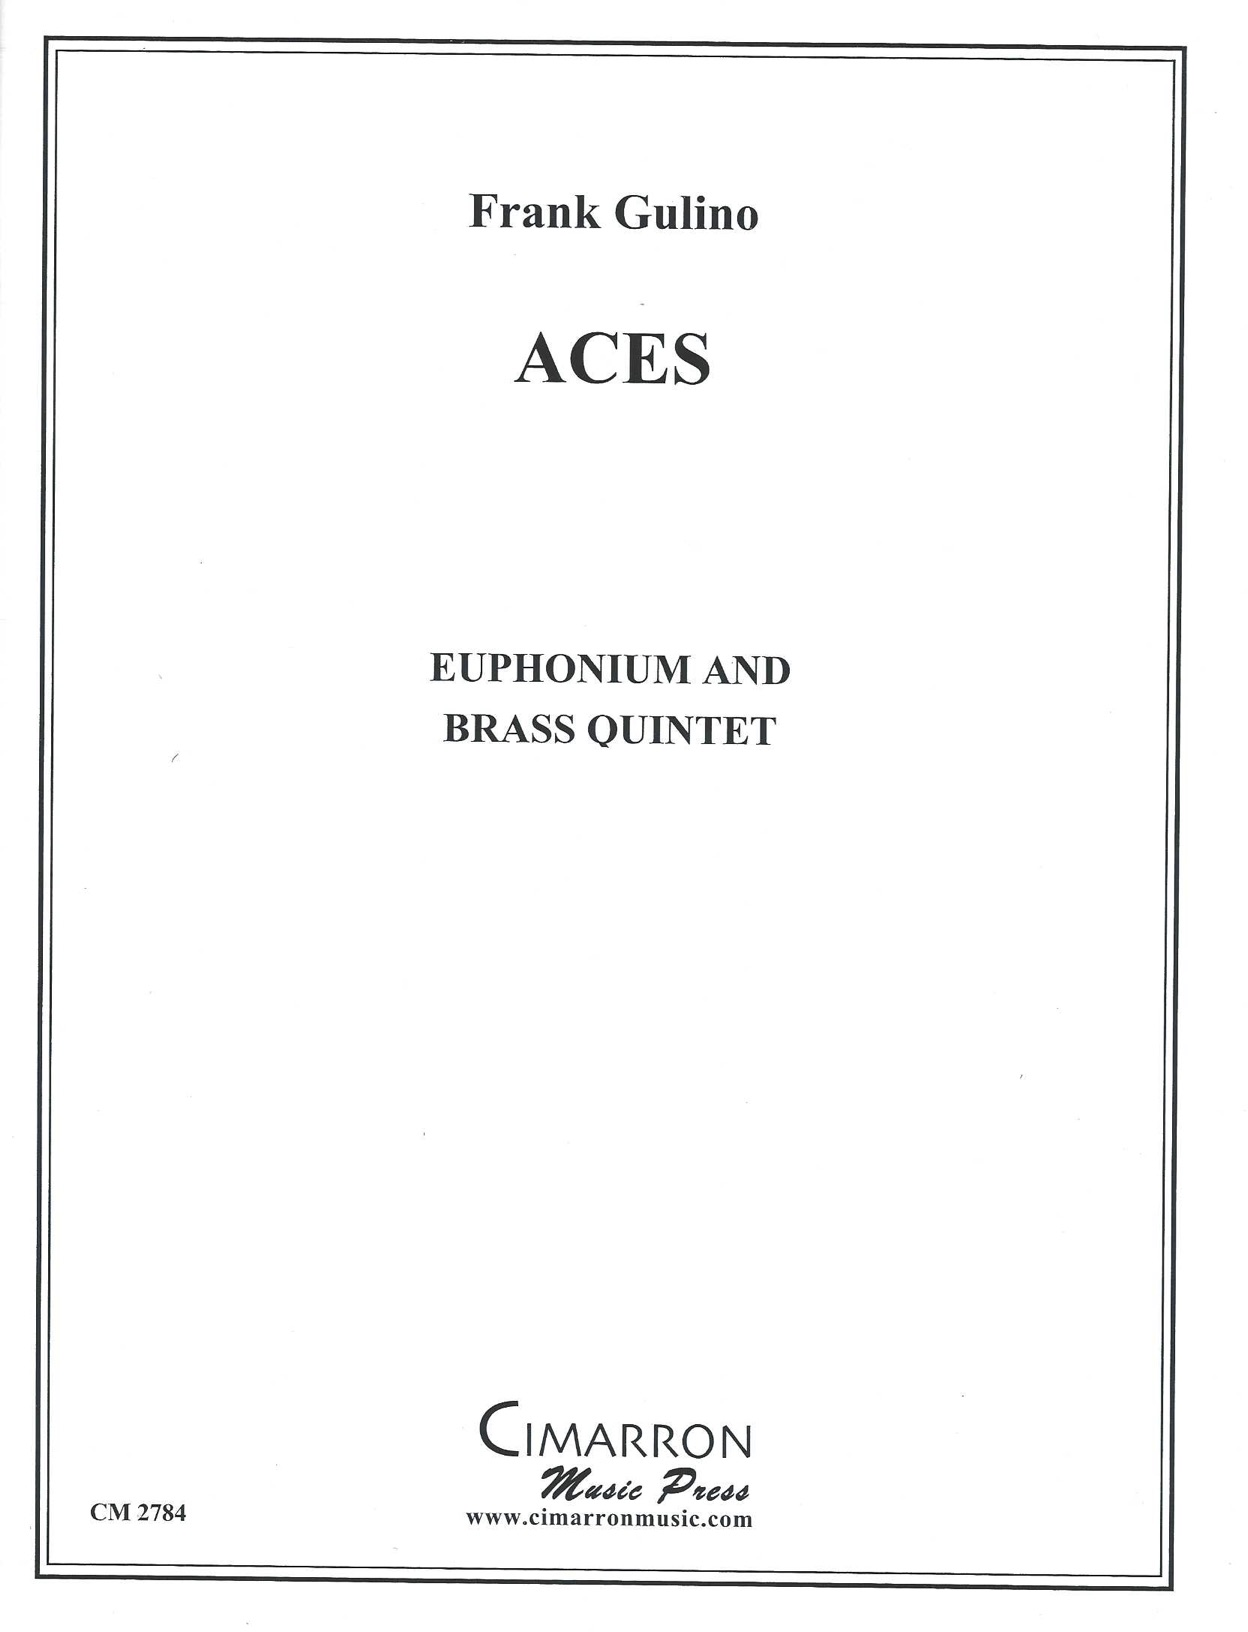 Aces - (Frank Gulino) - Euphonium solo with Brass Quintet accompaniment